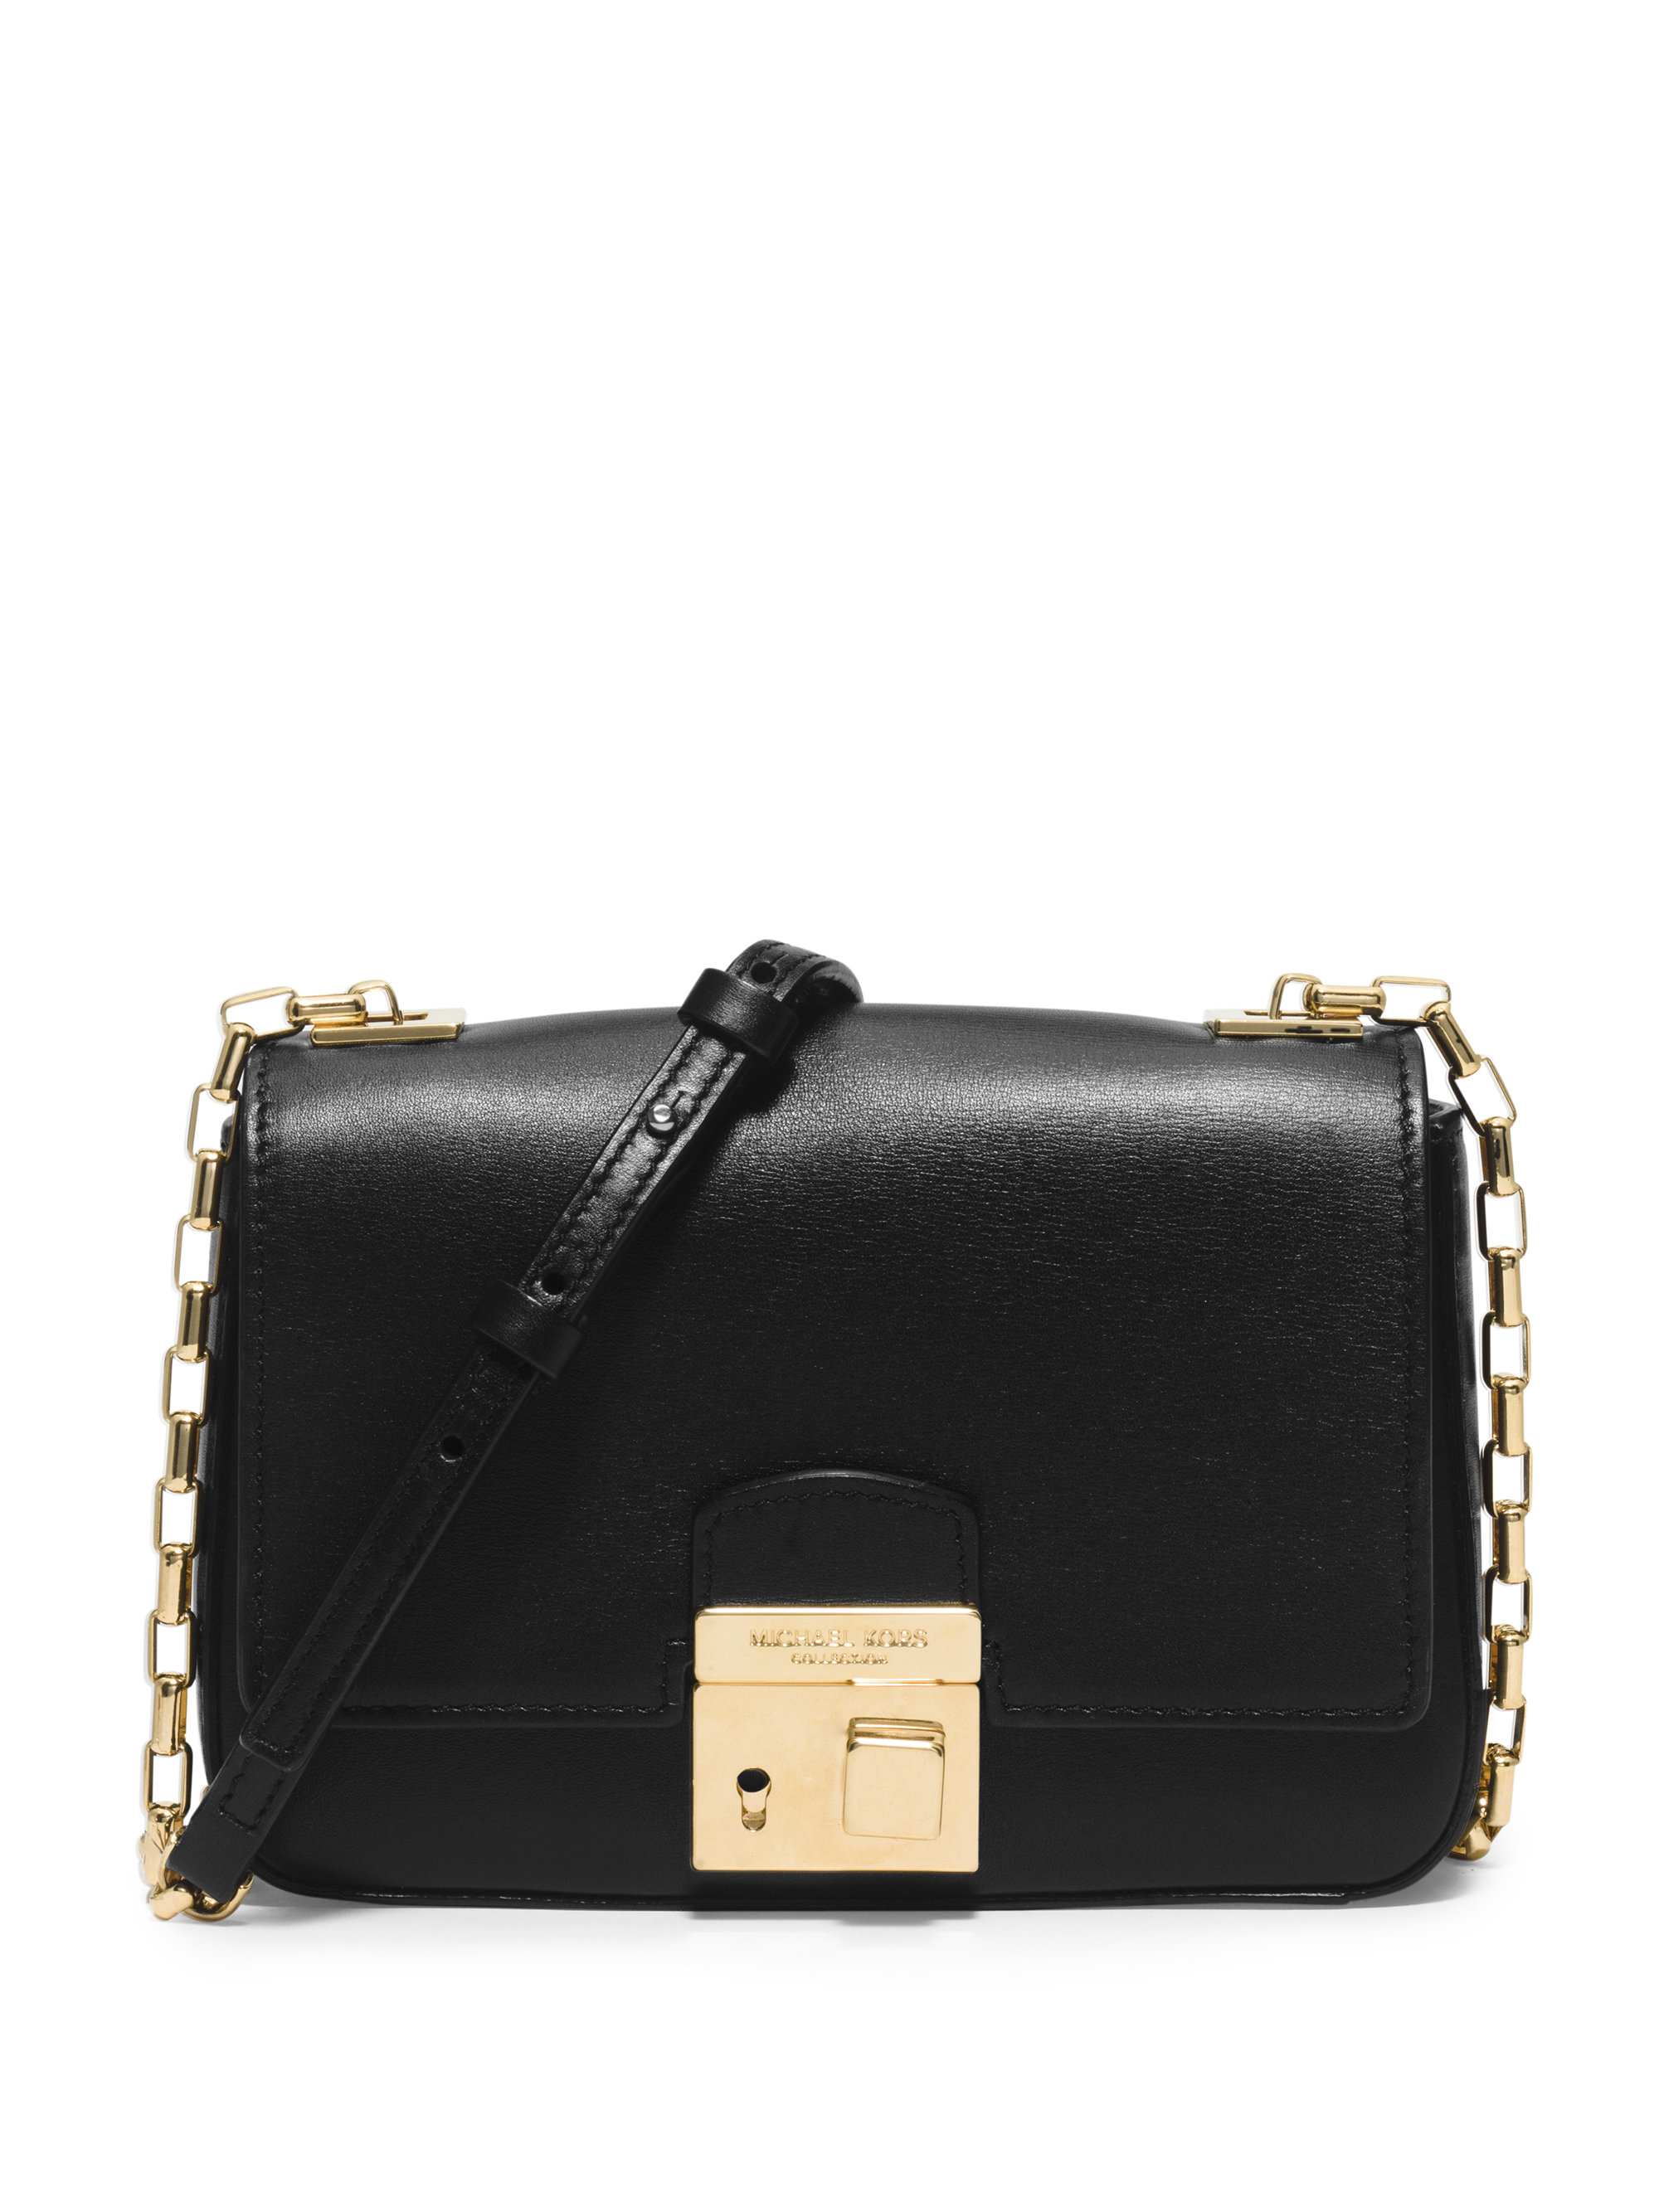 Michael kors Gia Small Leather Shoulder Bag in Black | Lyst